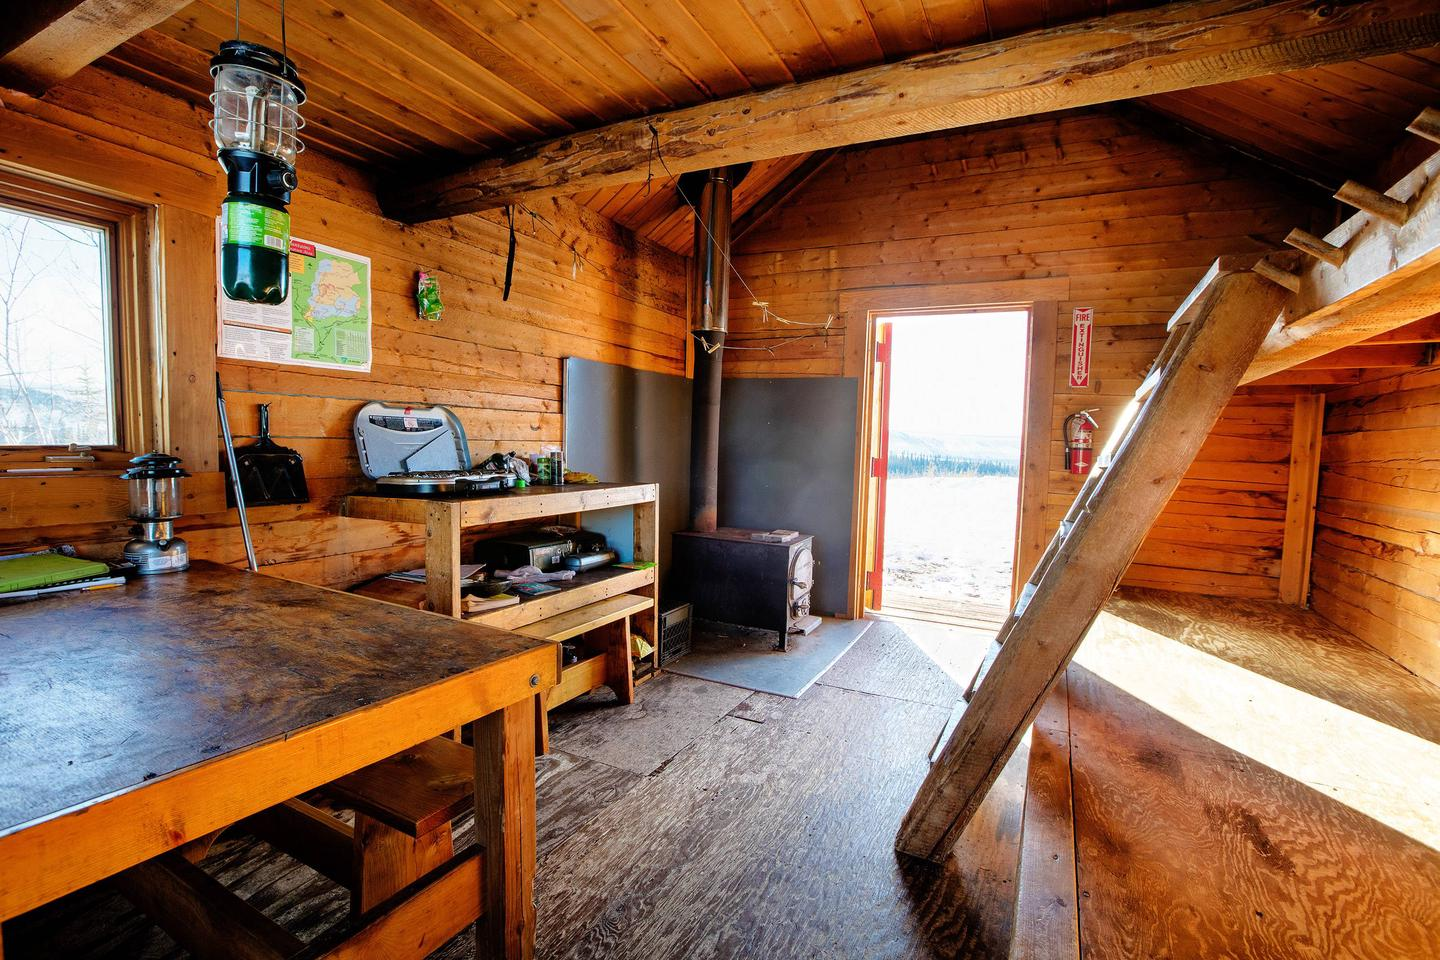 Inside of log cabin with view toward open front doorCache Mountain Cabin interior with bunks, cooking counter, and woodstove.